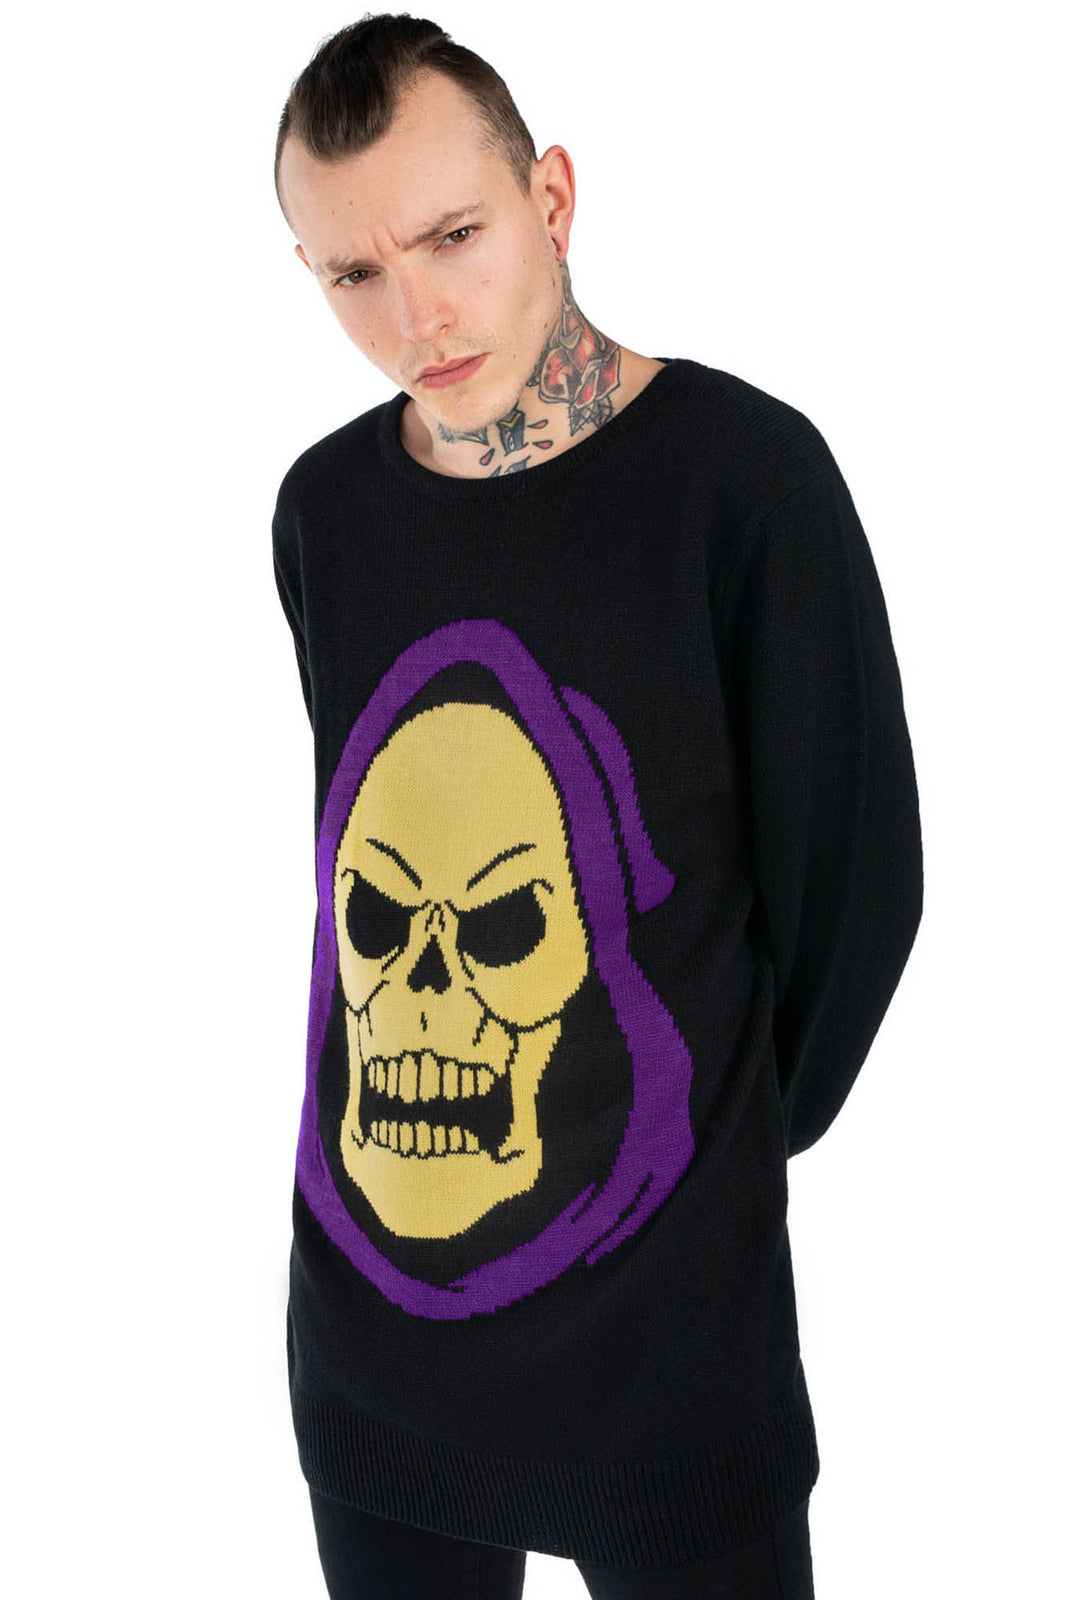 Skeletor Knit Sweater